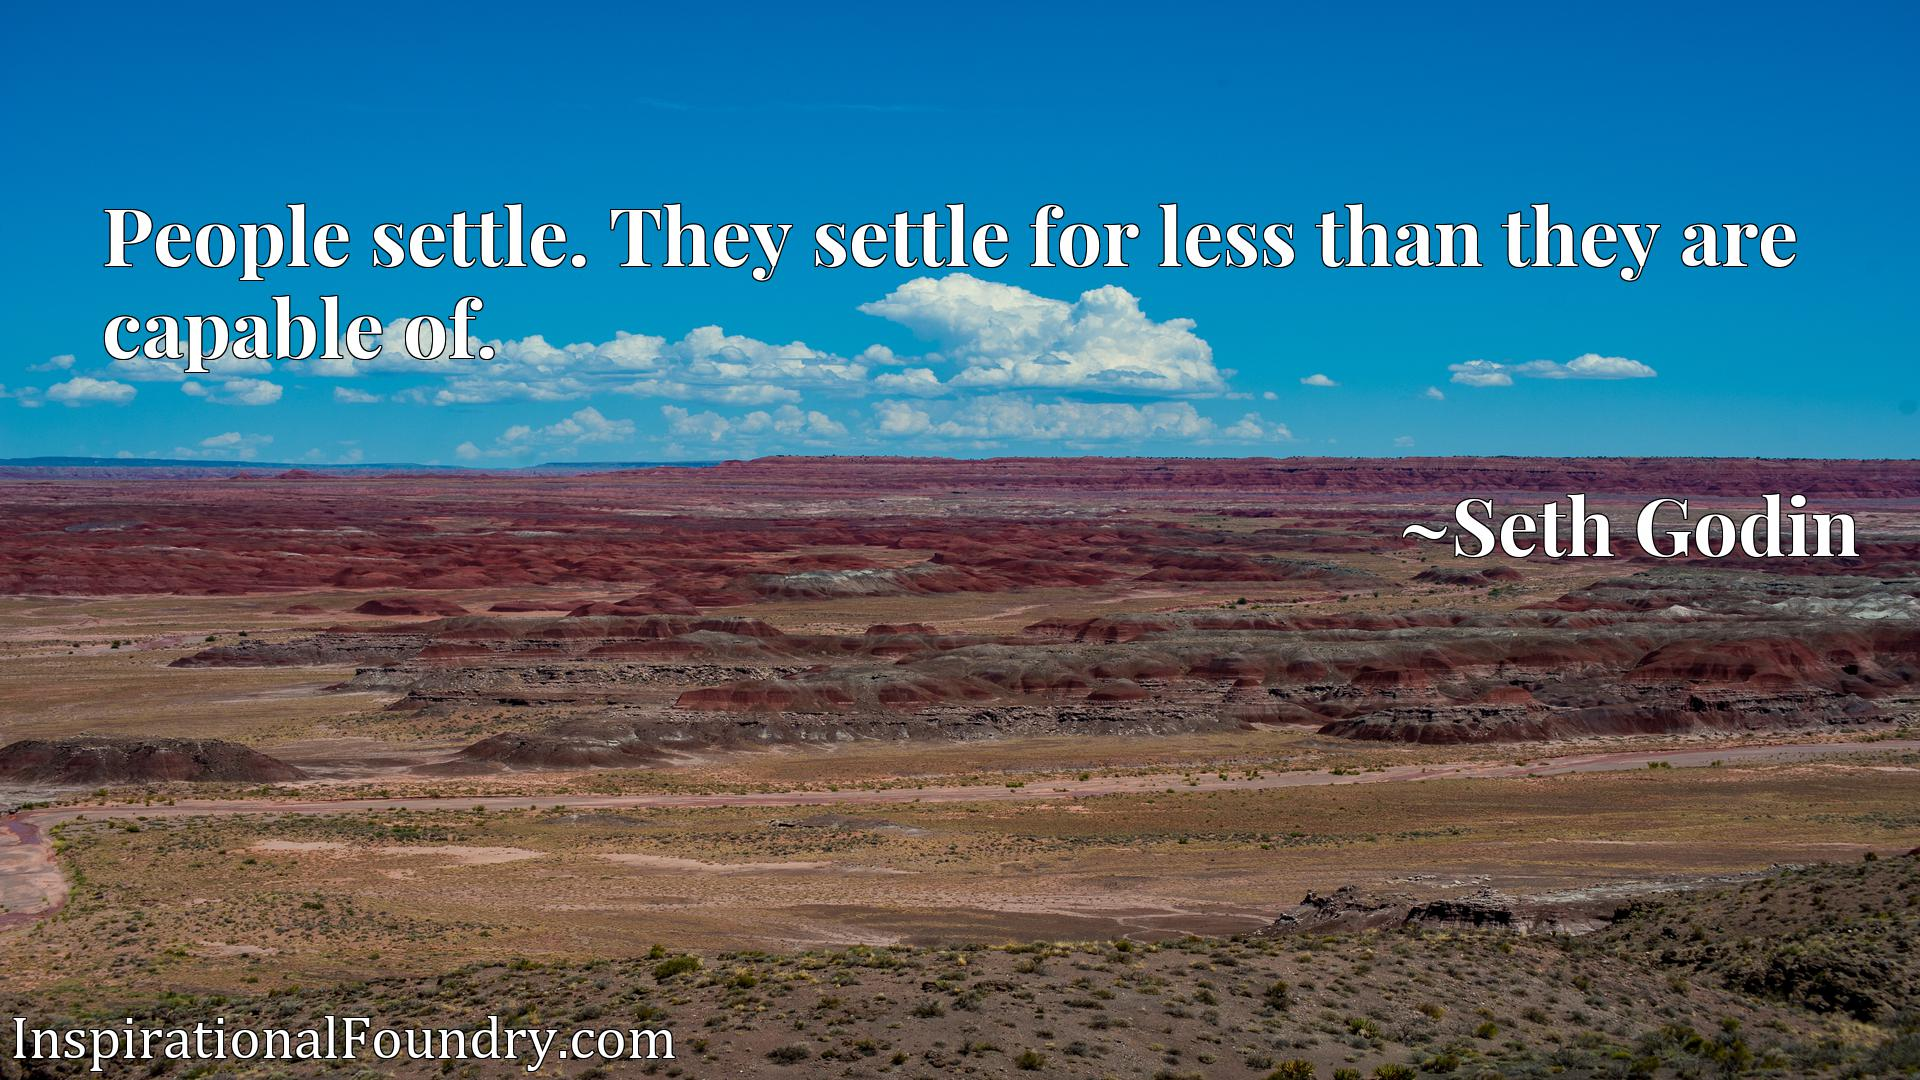 People settle. They settle for less than they are capable of.